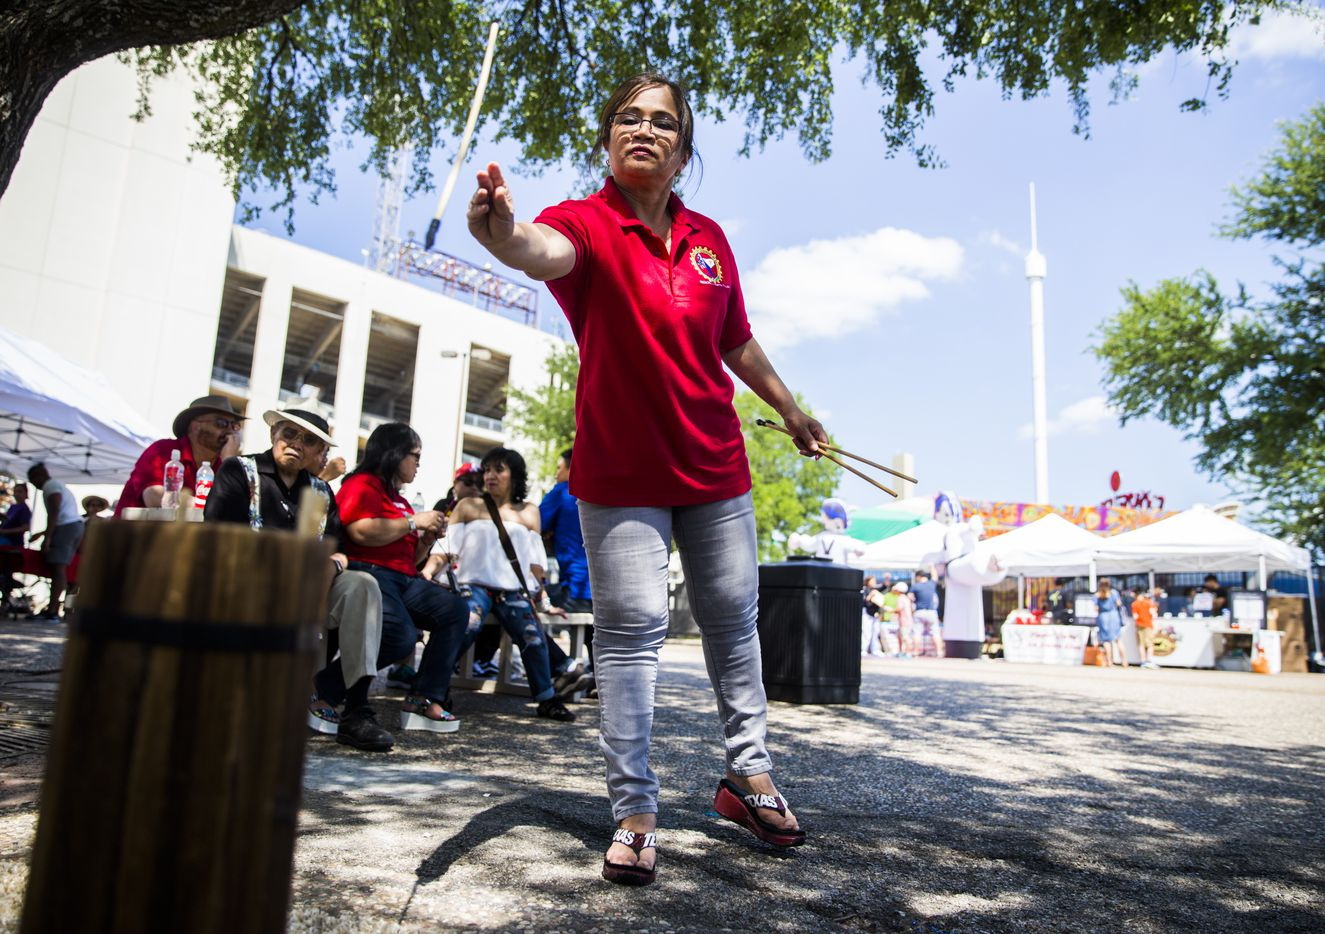 Elna Mallari plays a traditional Korean game during the 27th Home Depot Asian Festival on Saturday, May 13, 2017 at Cotton Bowl Plaza in Dallas Fair Park.